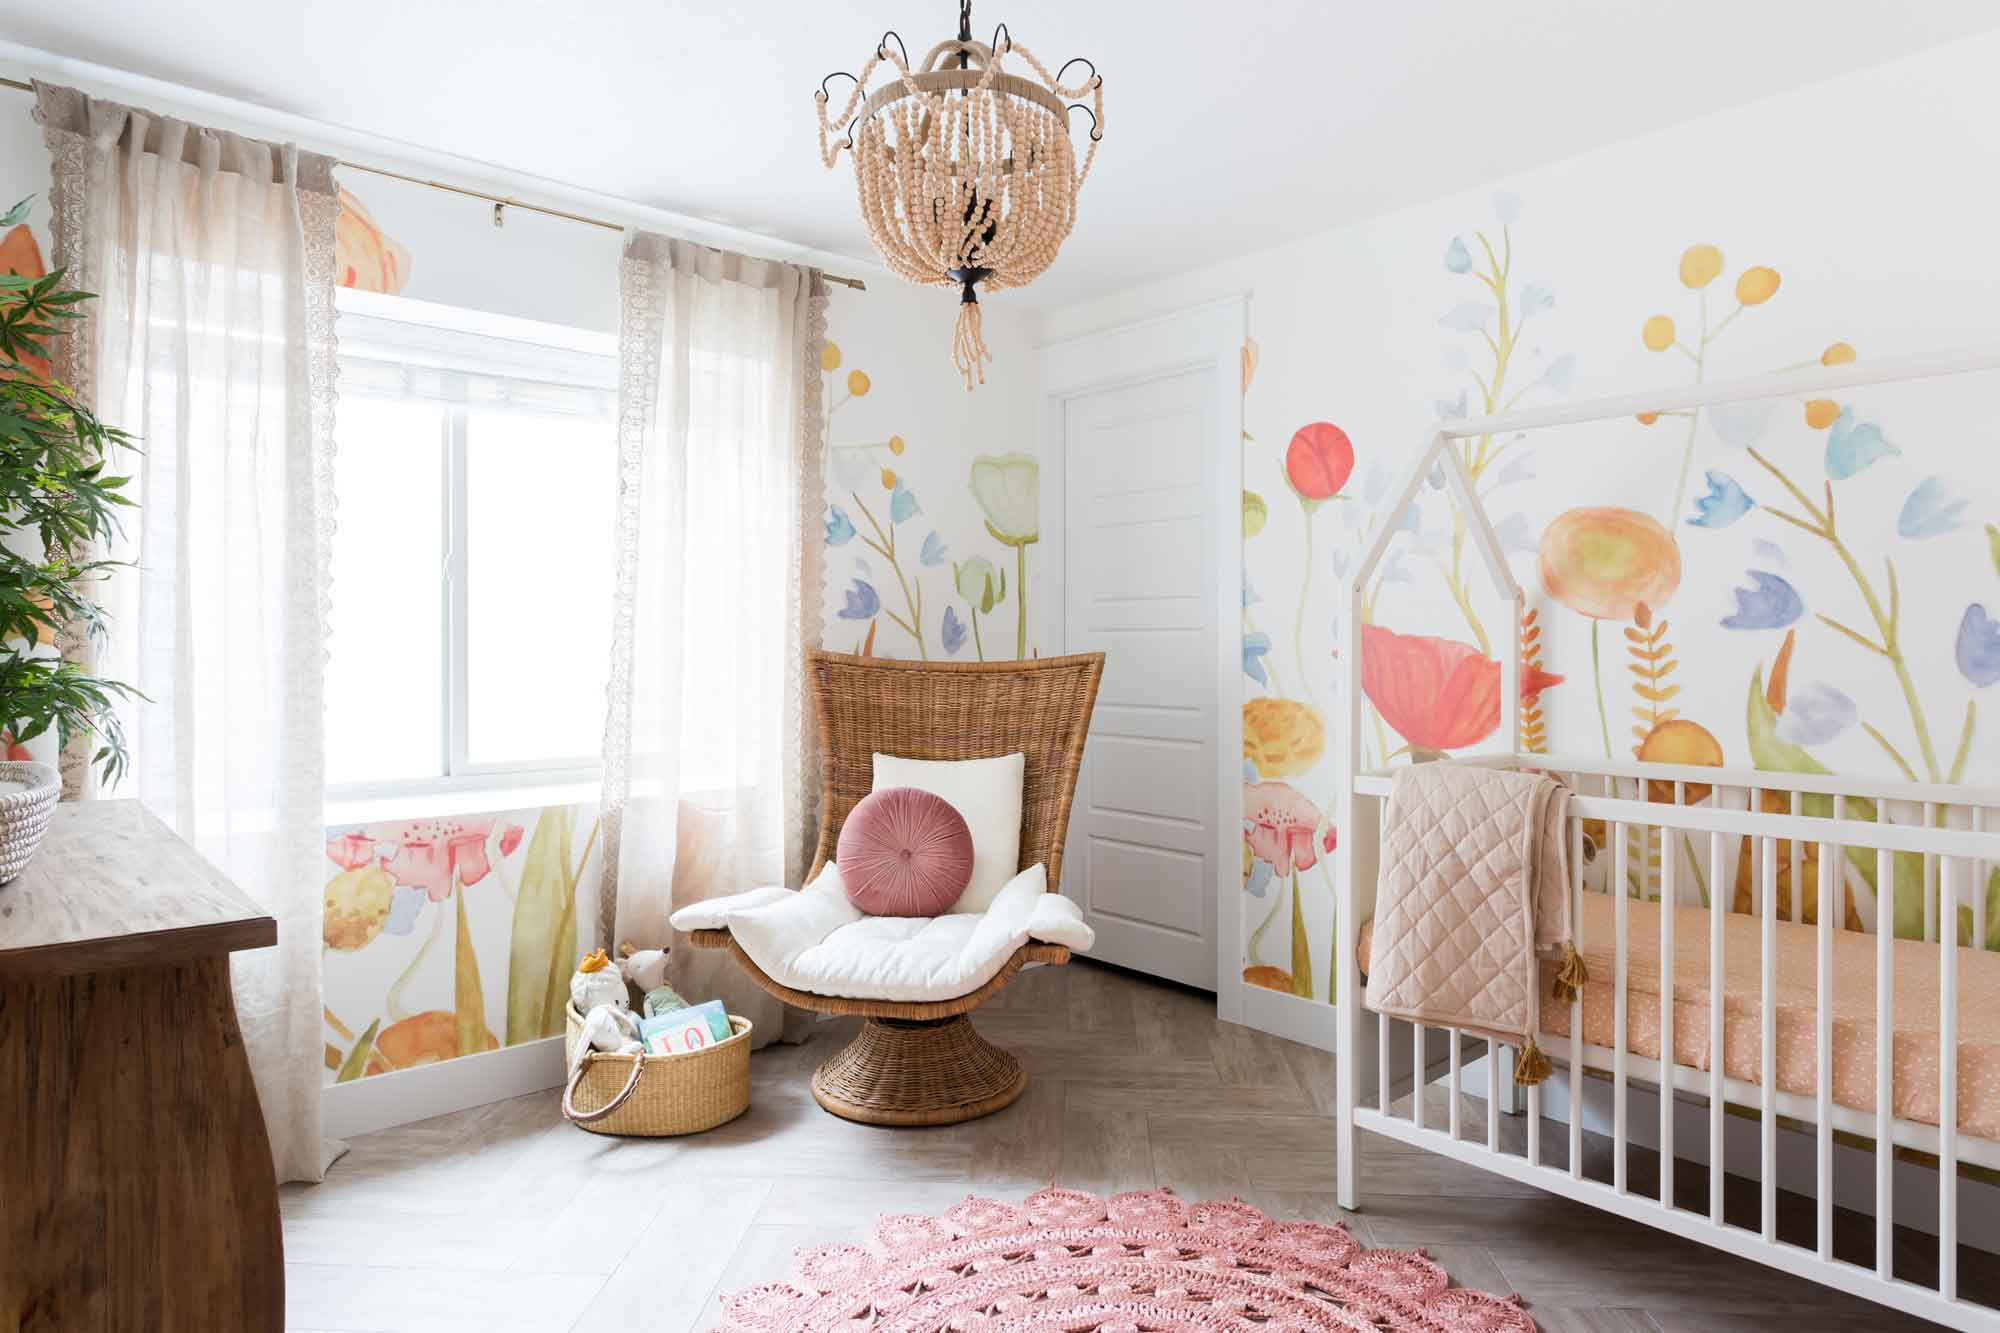 Cara Loren's Whimsical Nursery